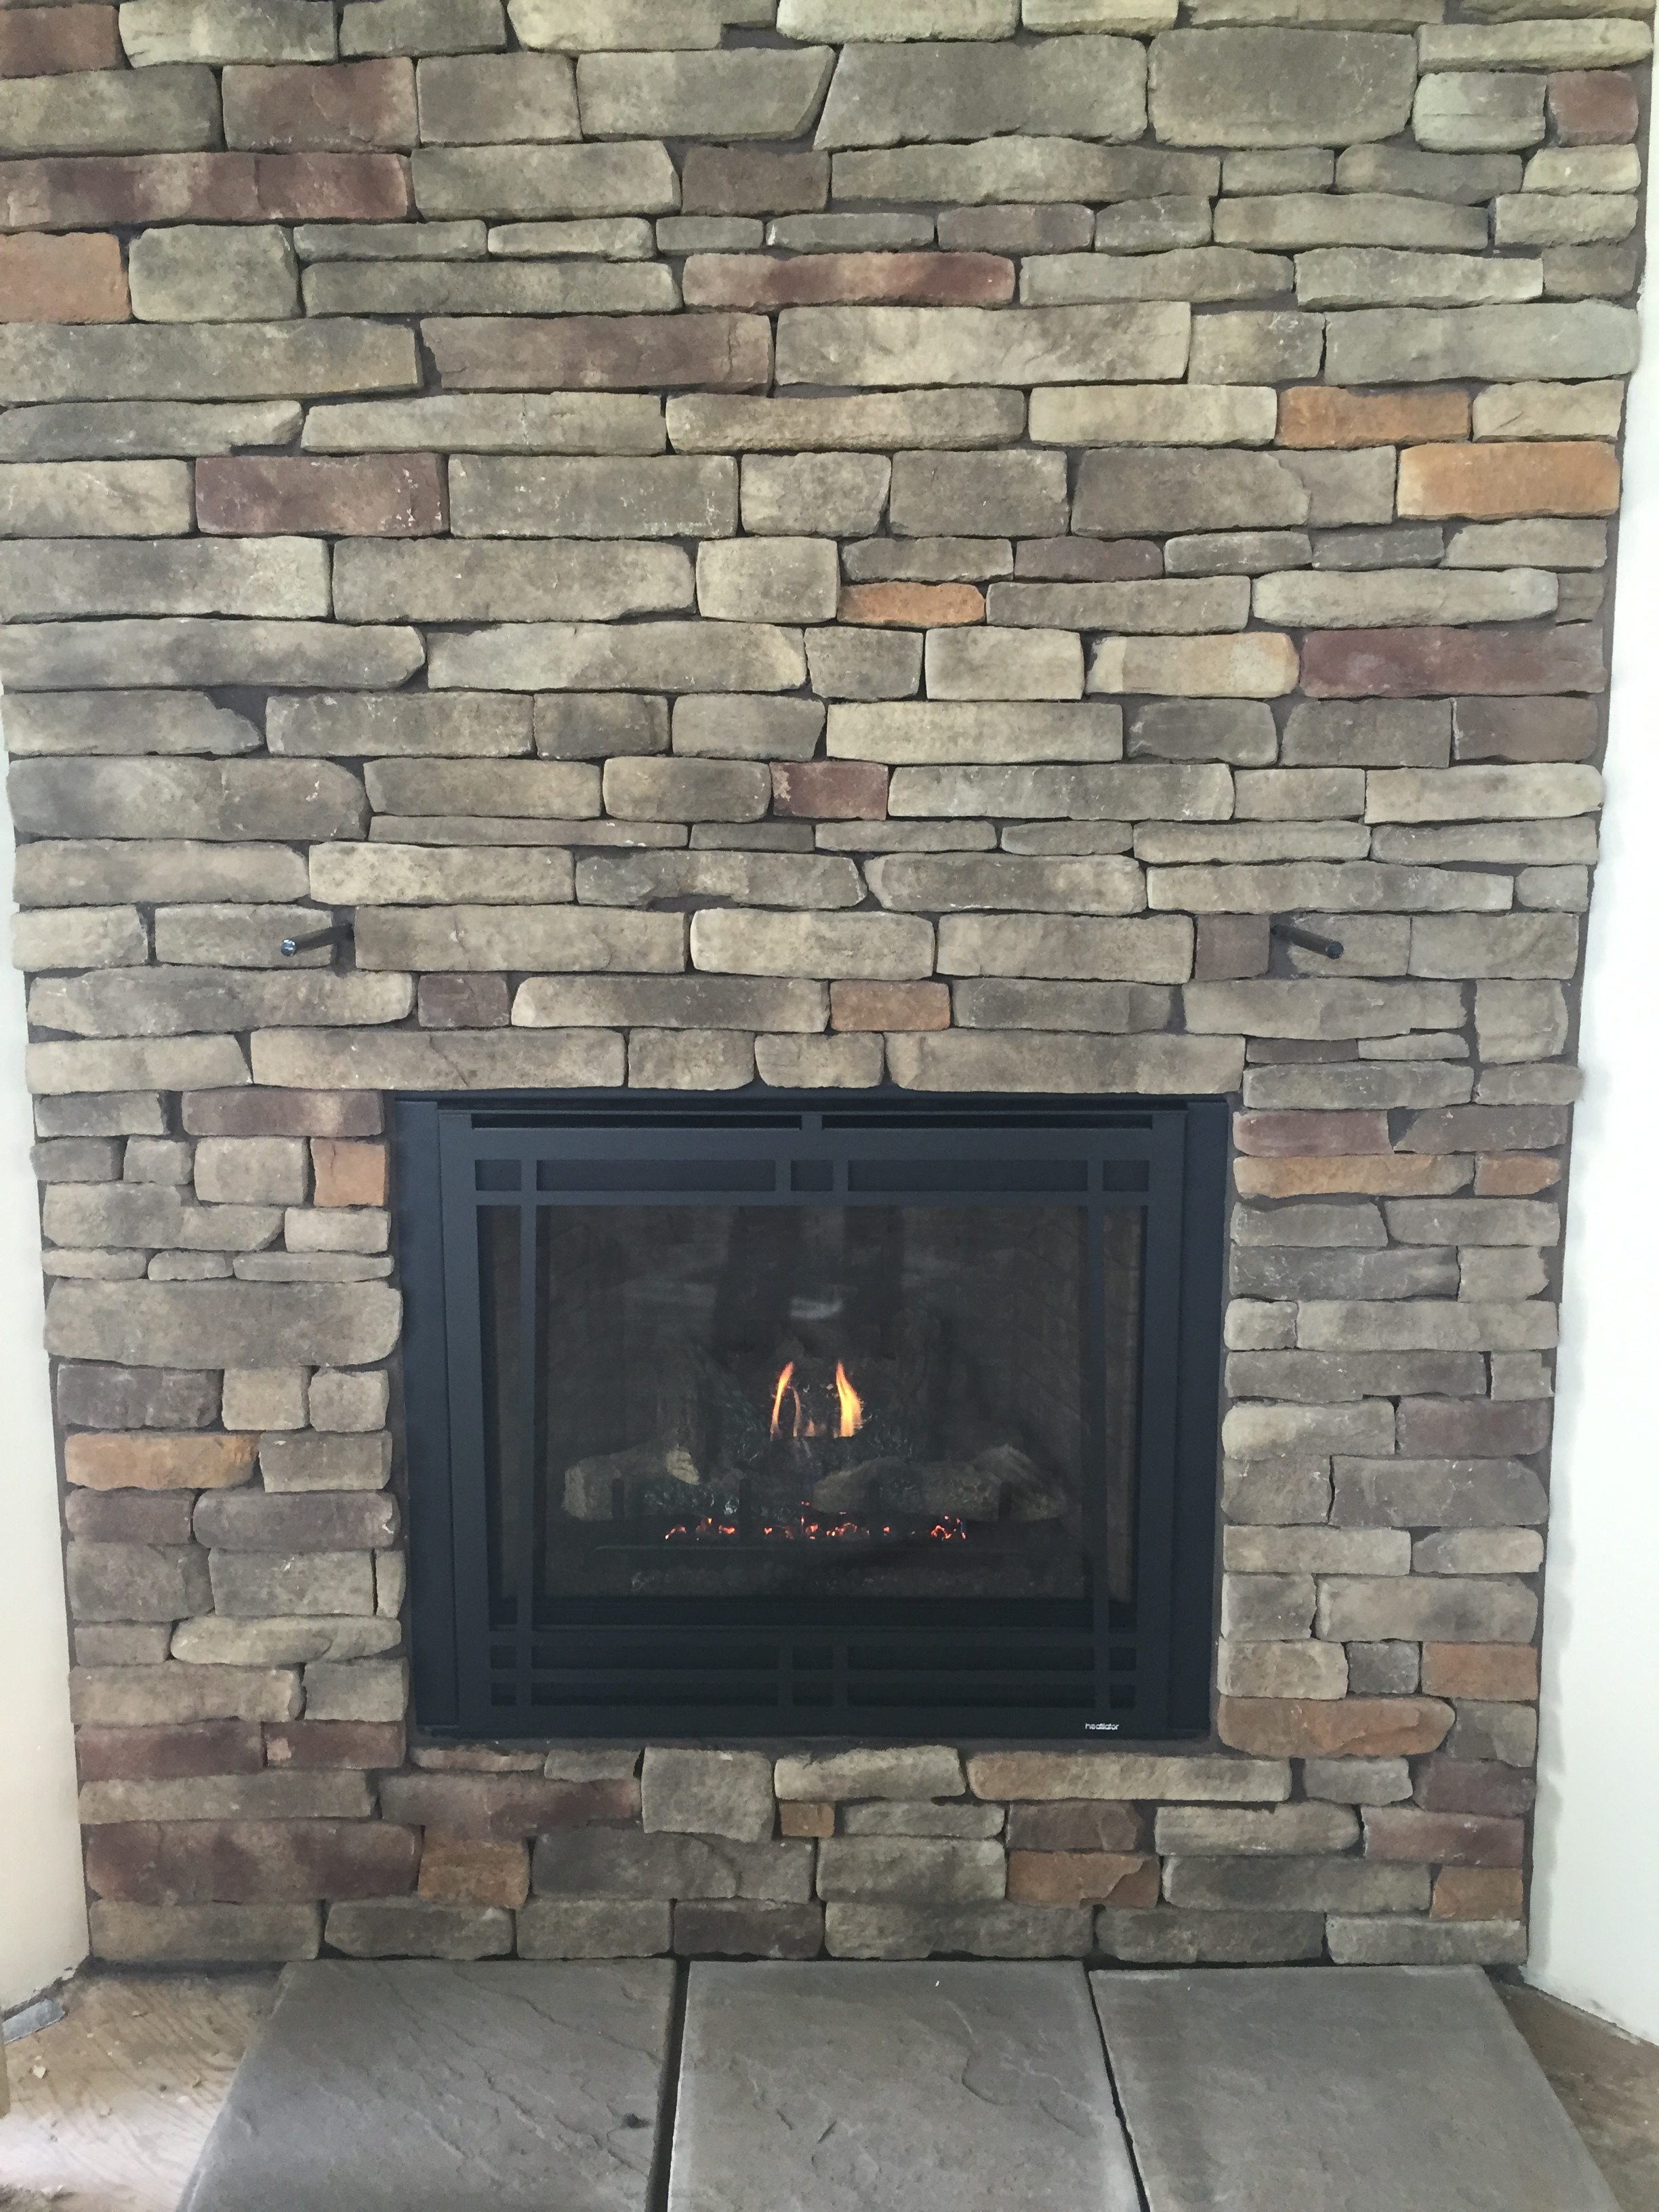 CALIBER NXT fireplace insert